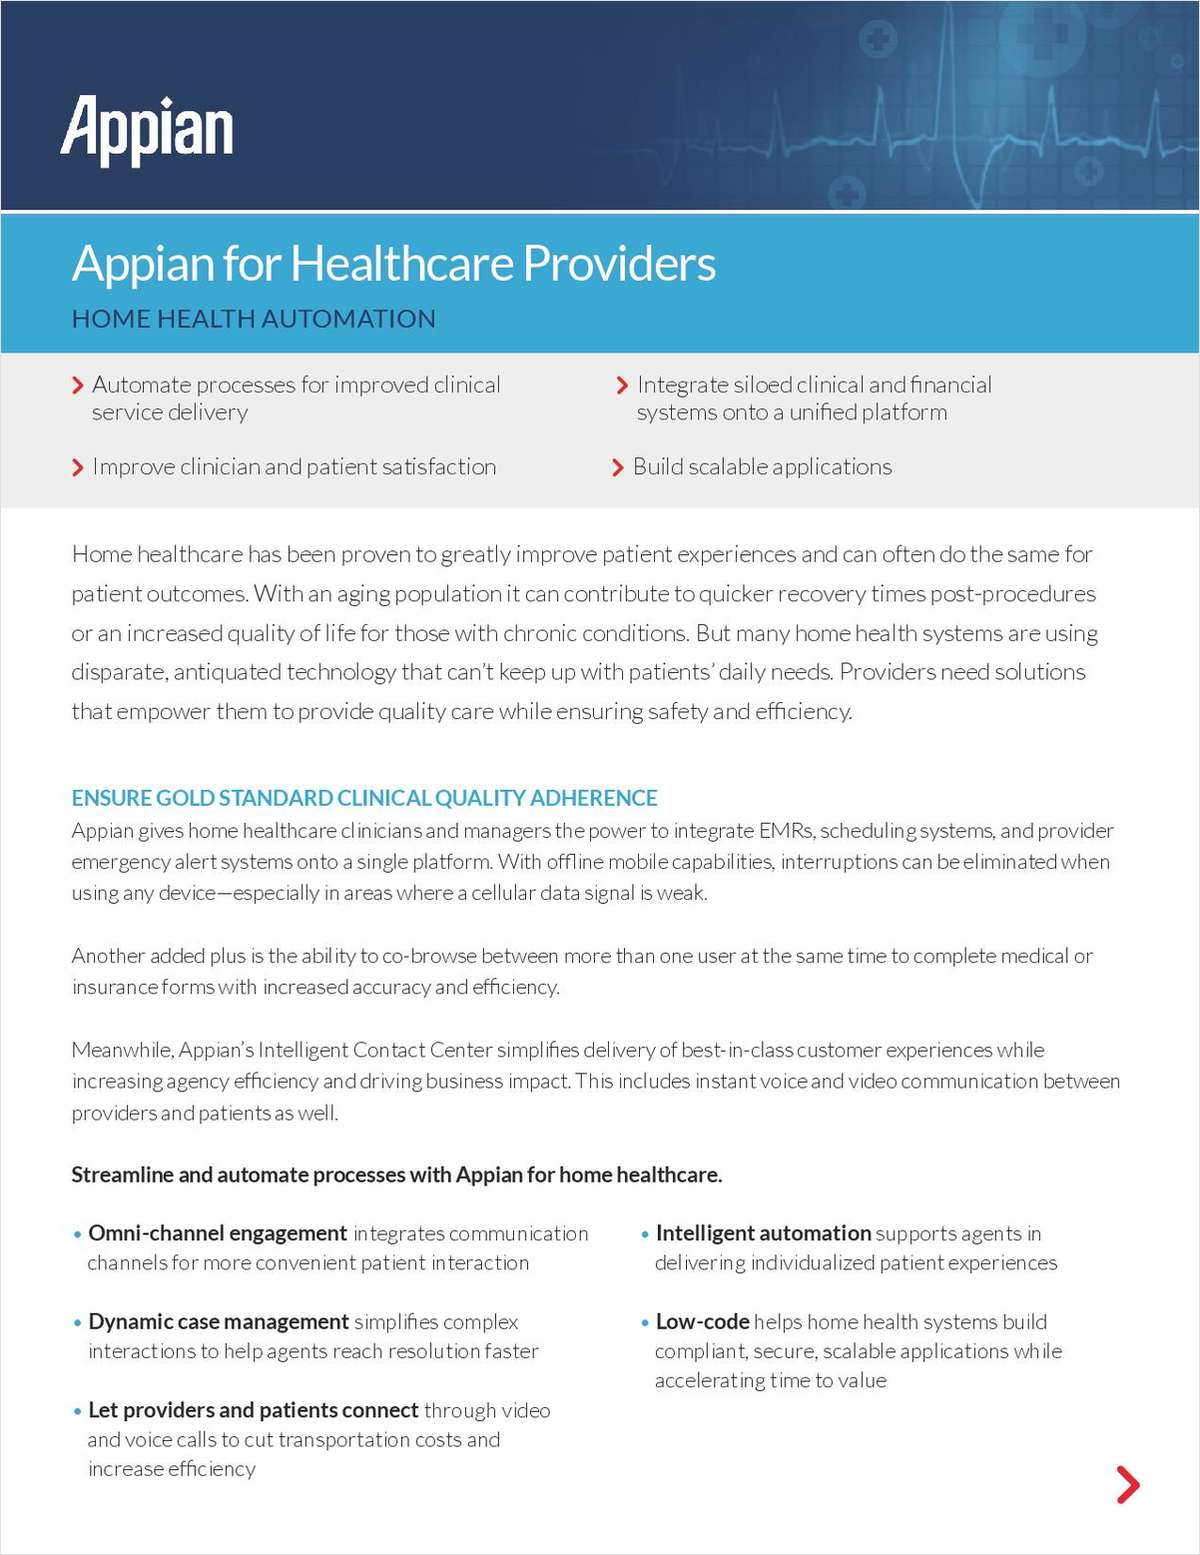 Appian for Healthcare Providers: Home Health Automation